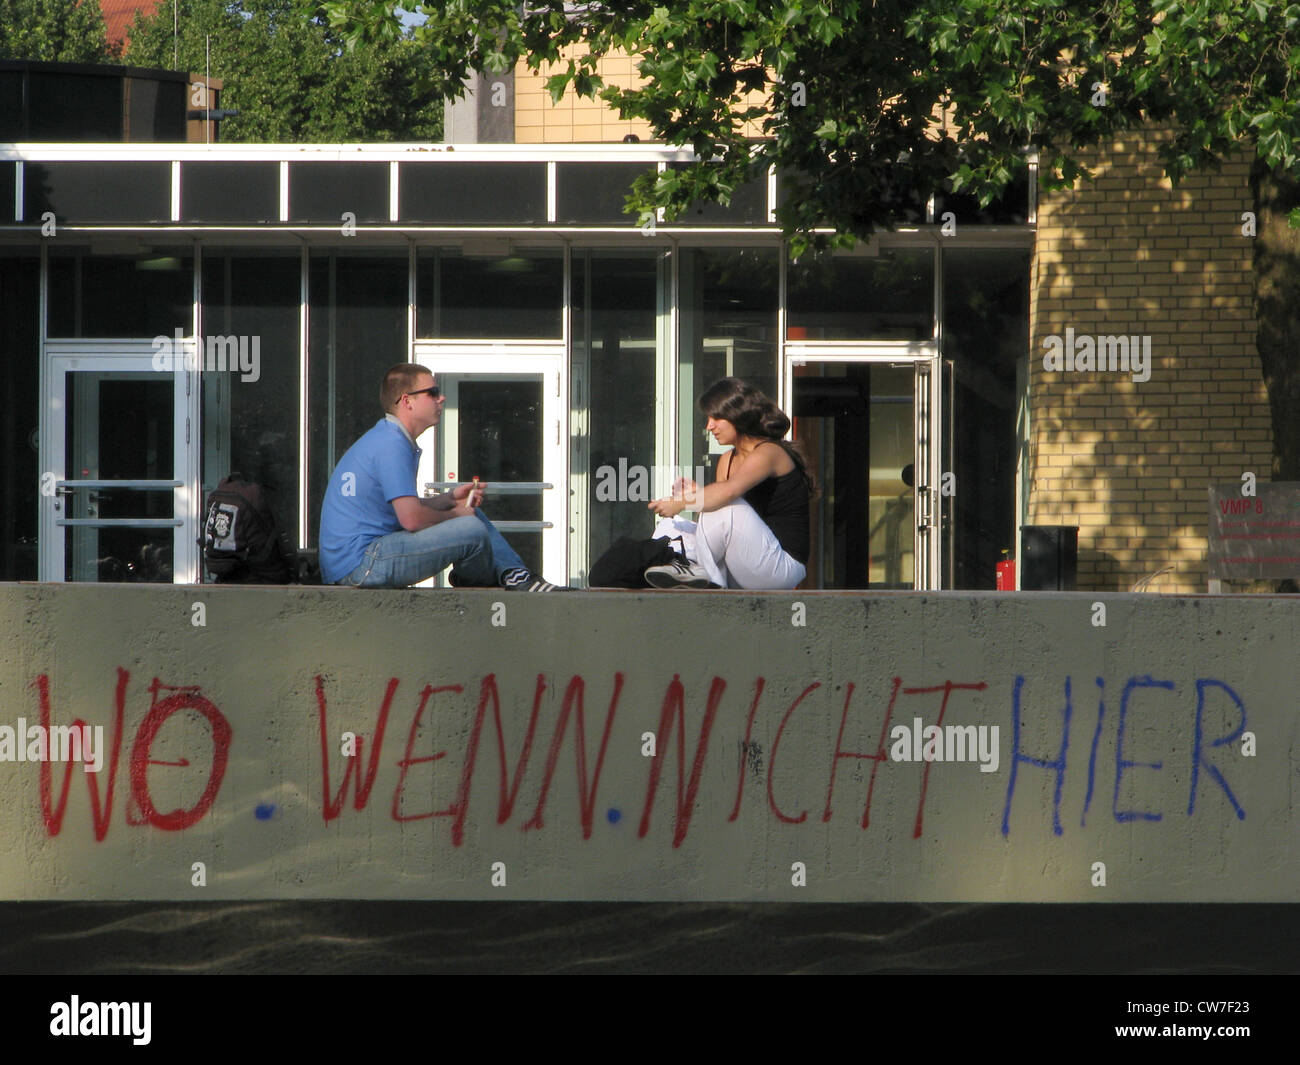 Young students at the university of Hamburg - grafiti saying 'Wo wenn nicht hier' (Where if not here), Germany, - Stock Image